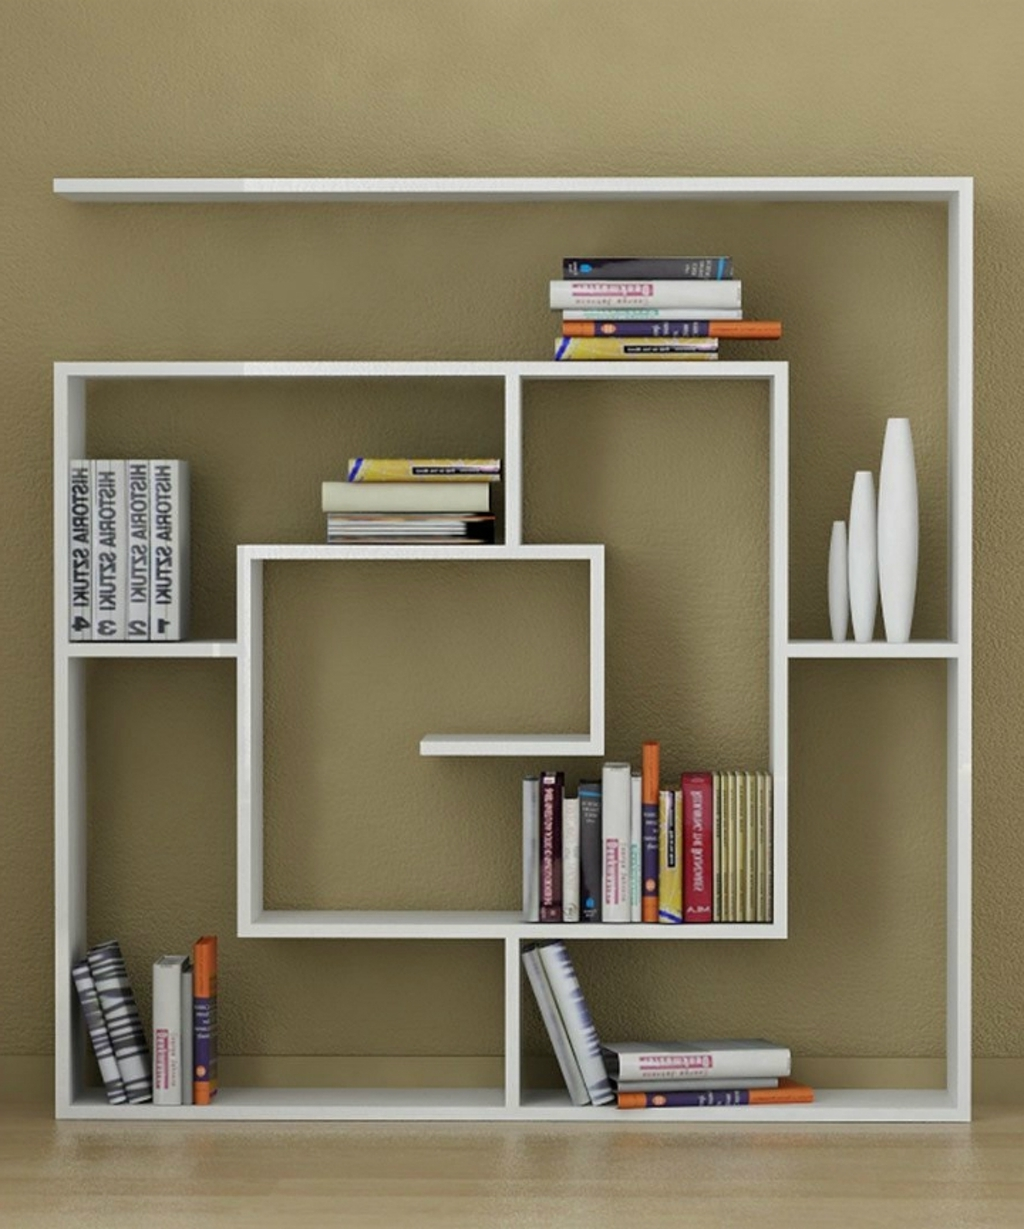 Recent Bookshelves Designs For Home Within Furniture: Decortie Square Book Storage Display – 10 Creative (View 3 of 15)